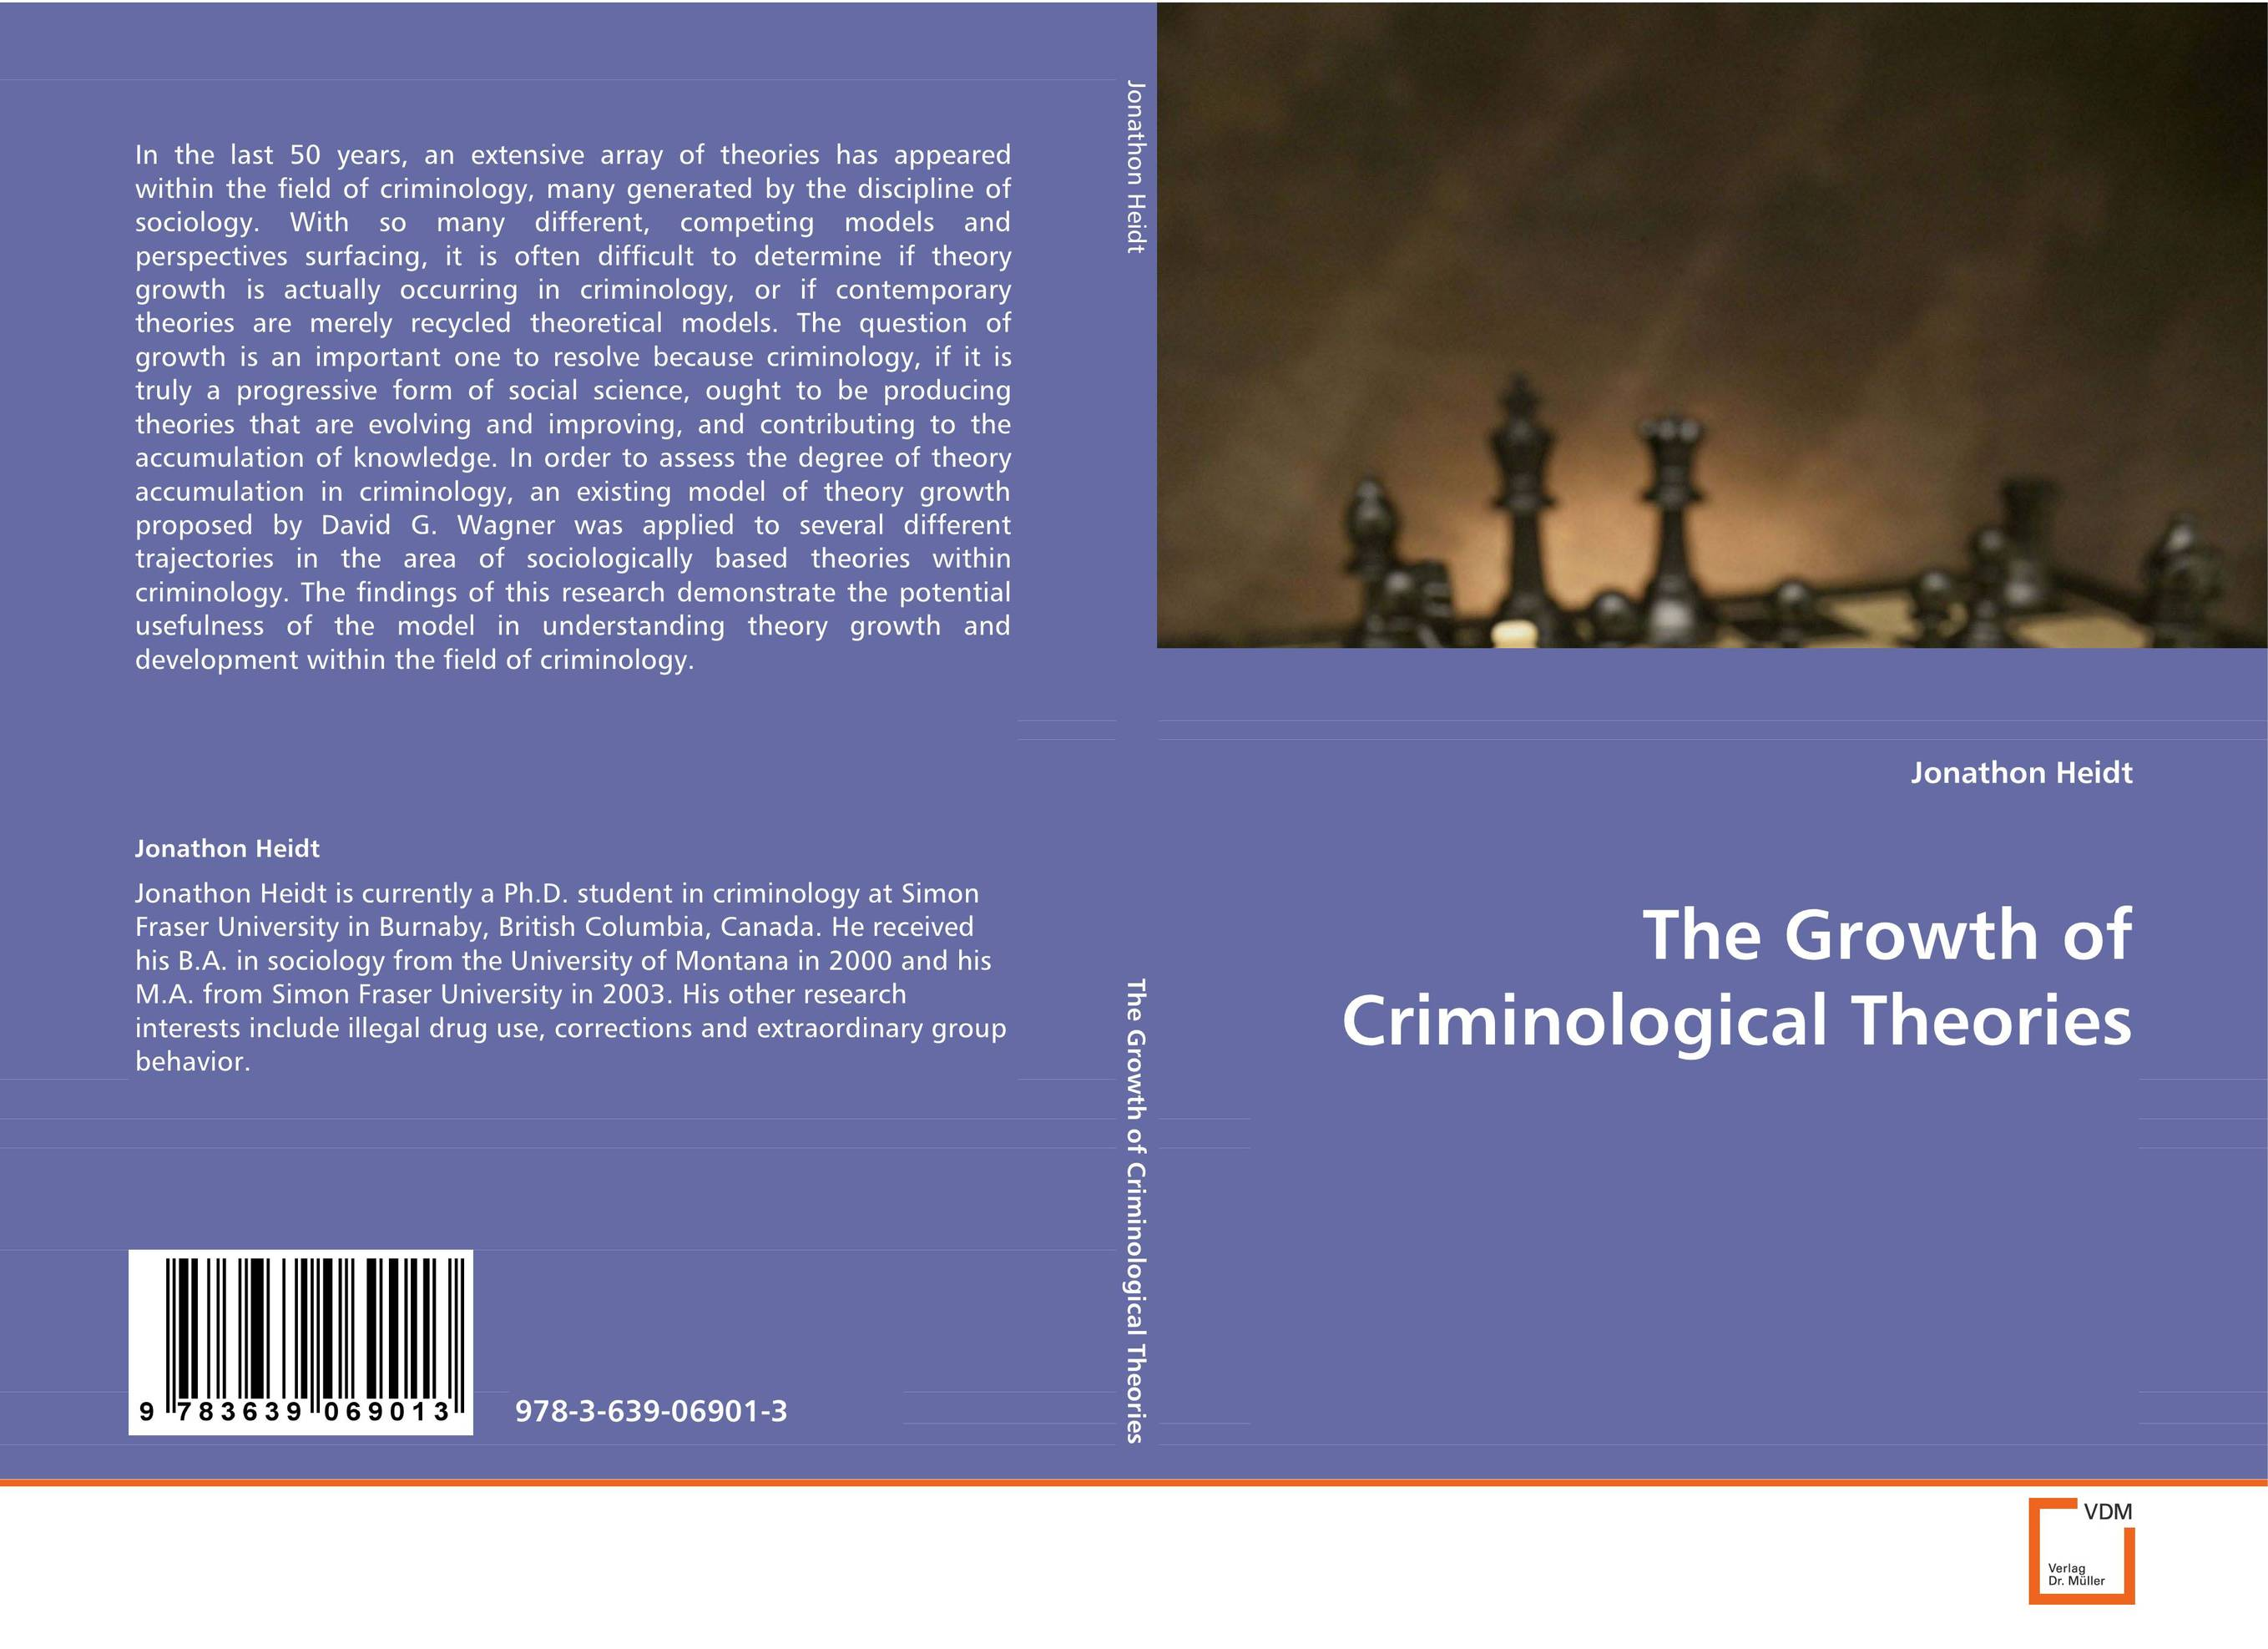 The Growth of Criminological Theories feminism and criminology